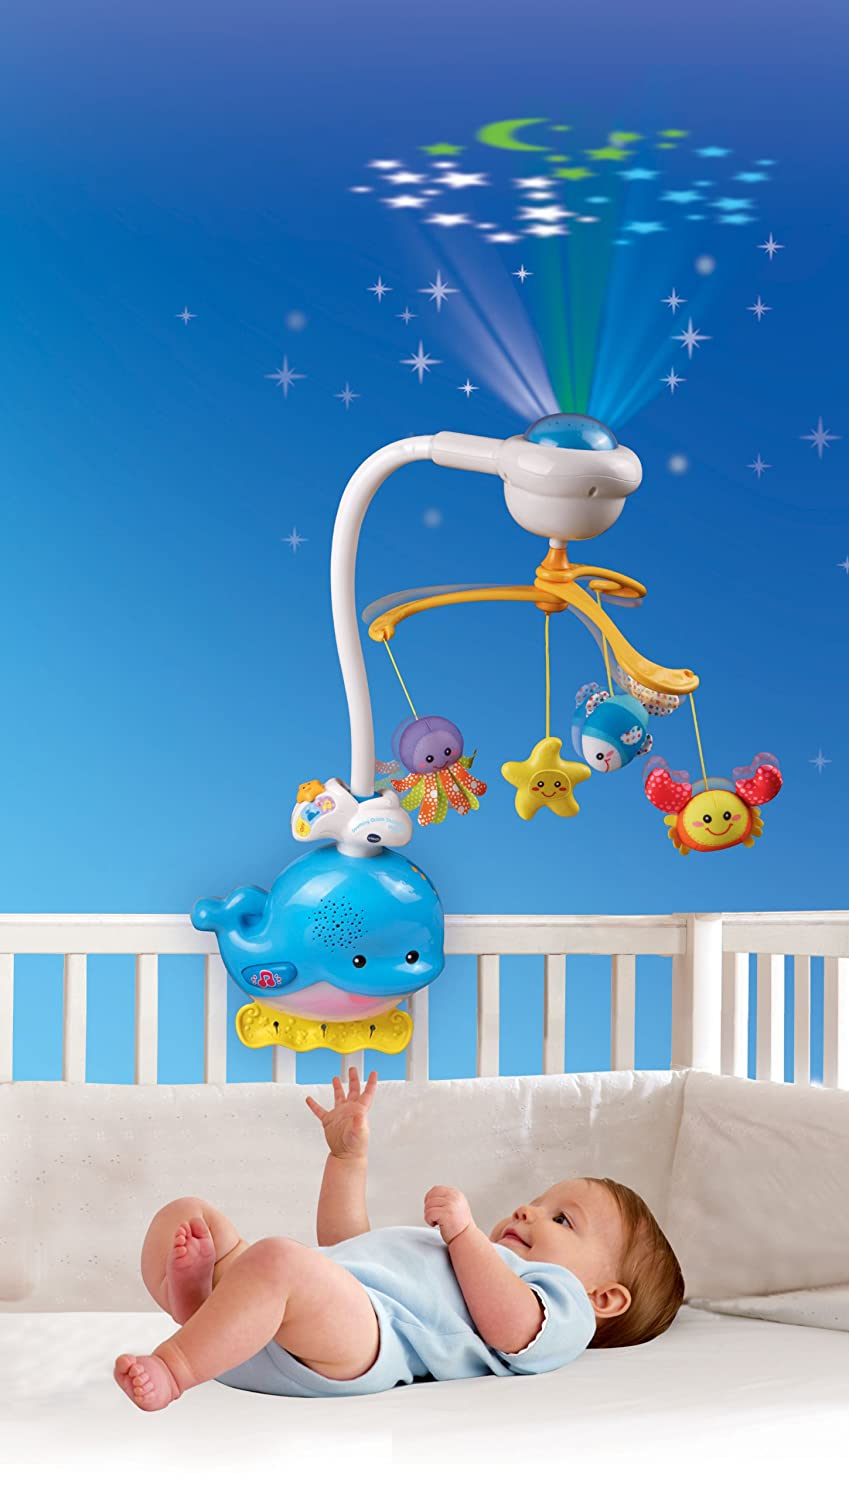 crib watch bedtime review cribs mobile musical youtube mobiles originals for baby